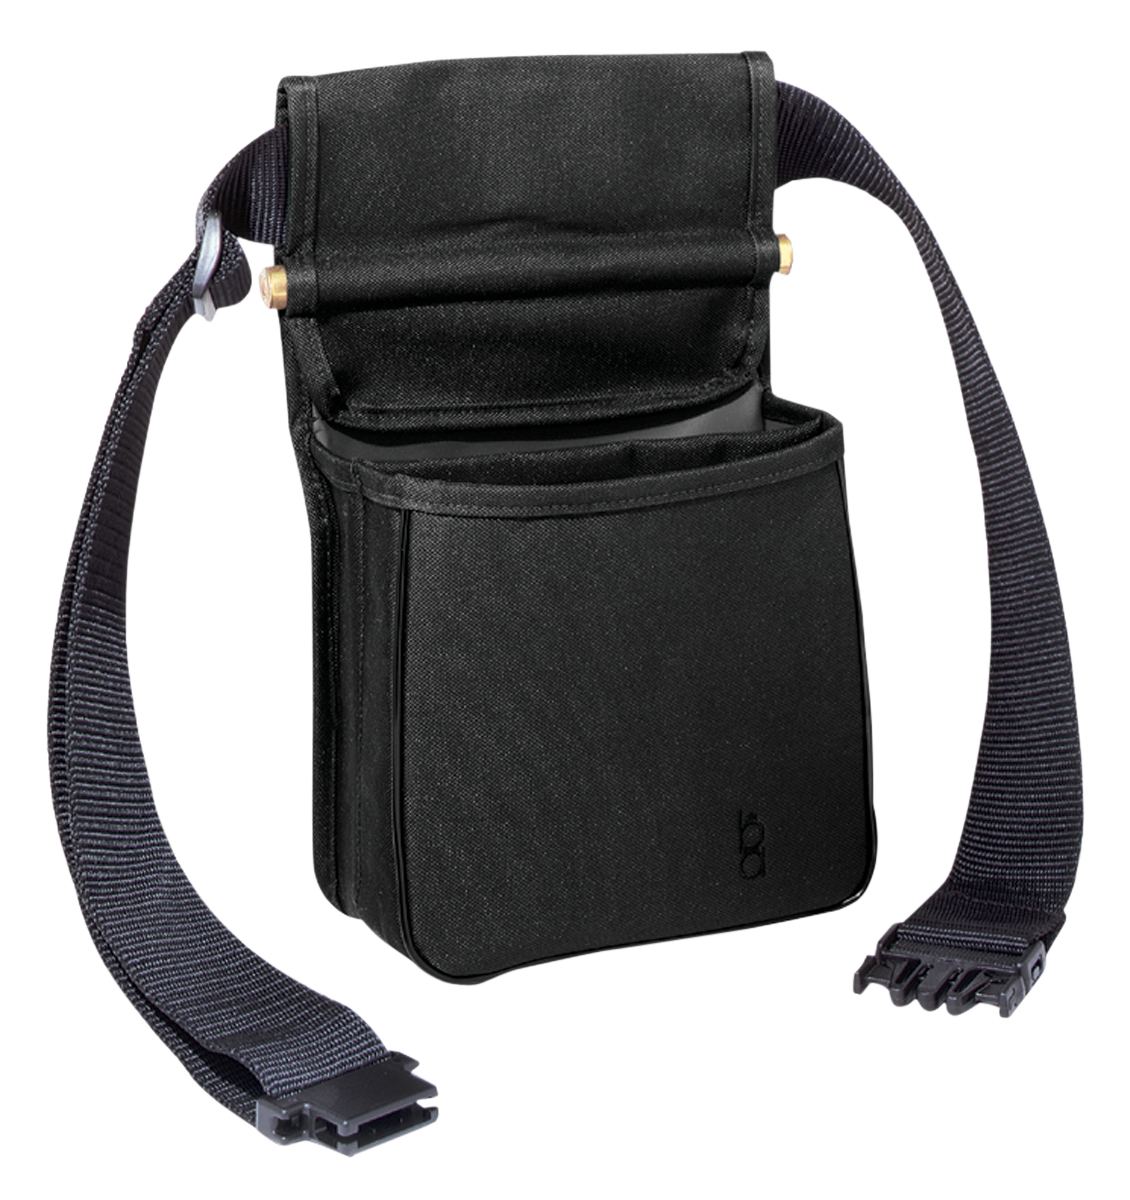 Bob Allen Divided Shell Pouch with Belt - Black